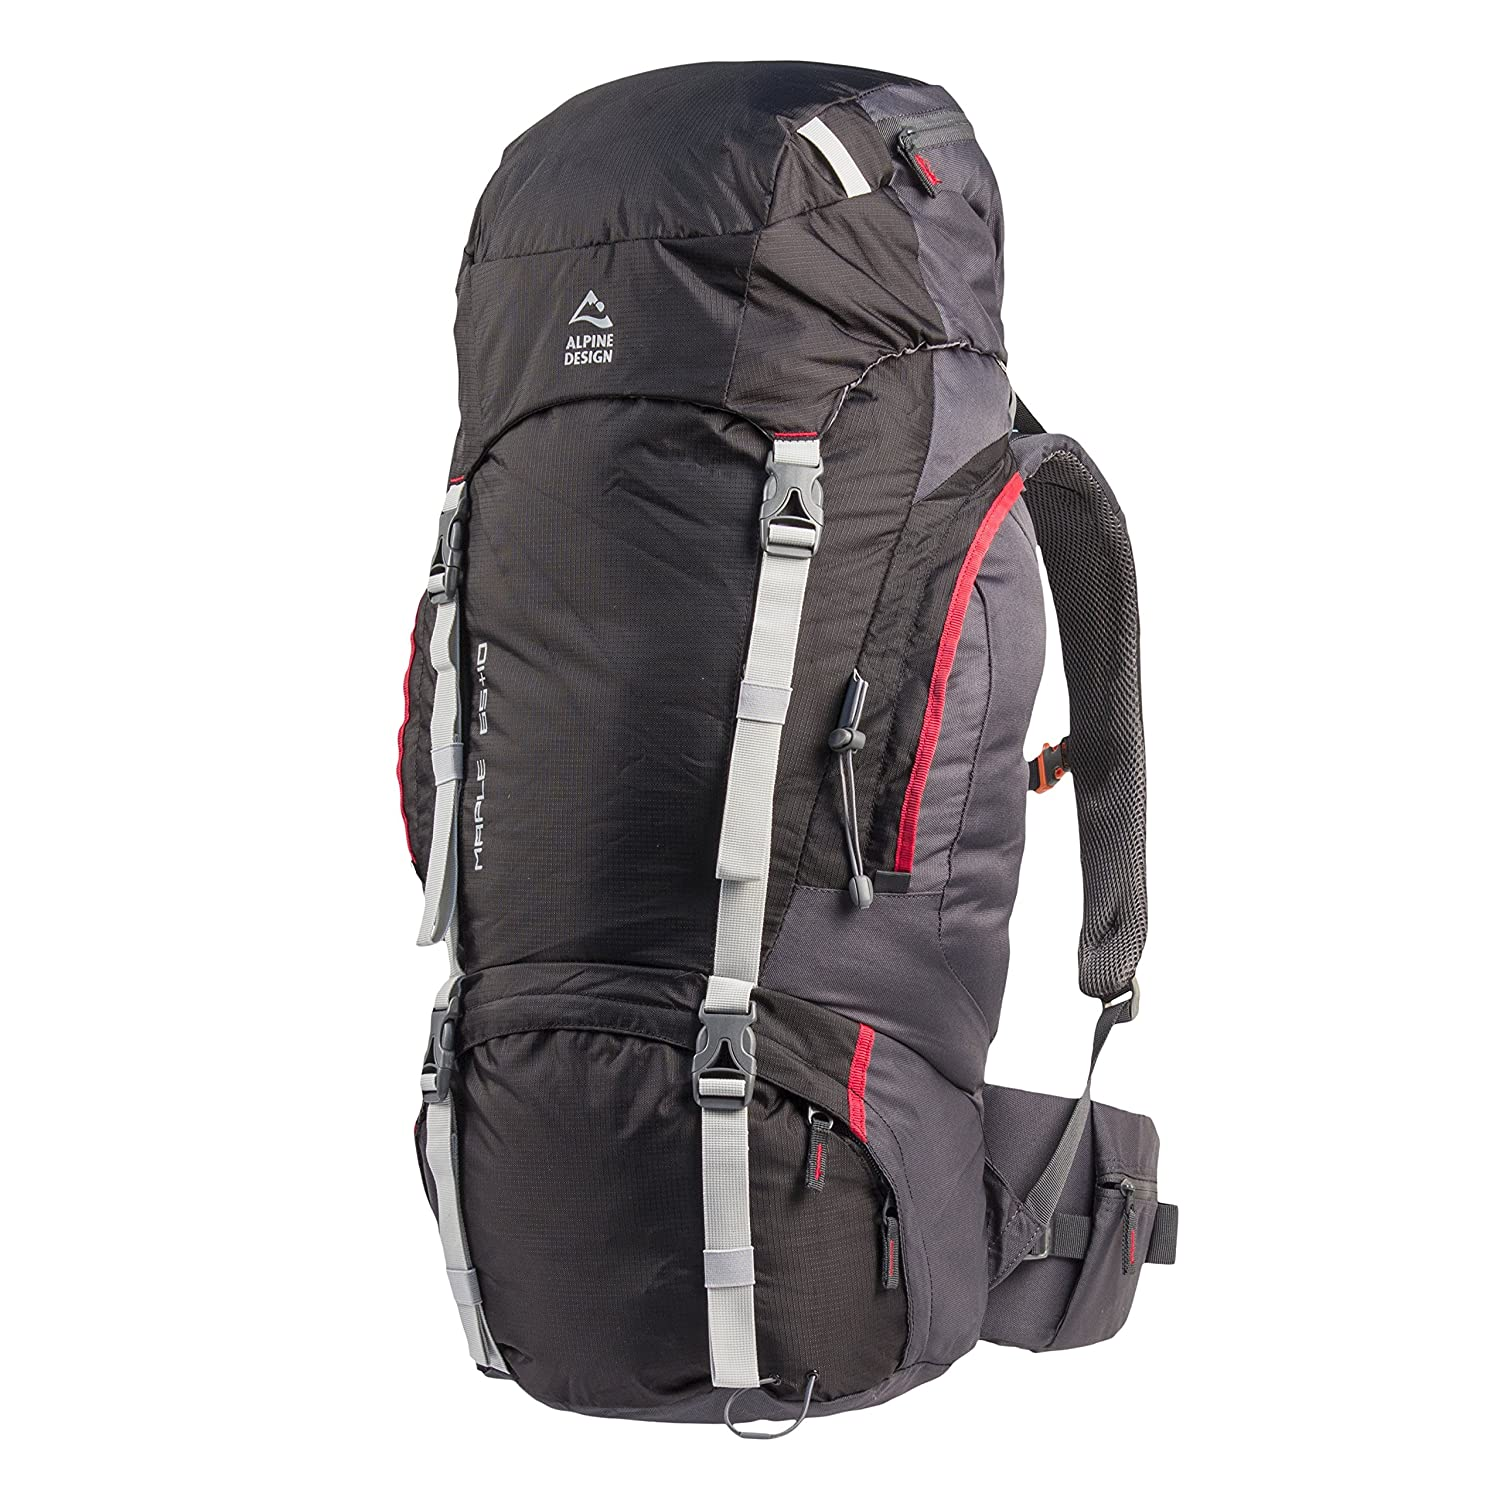 Amazon.com | Alpine Design Maple 65 + 10 (65 Liter) Trail Backpack Style: 252163 | Casual Daypacks